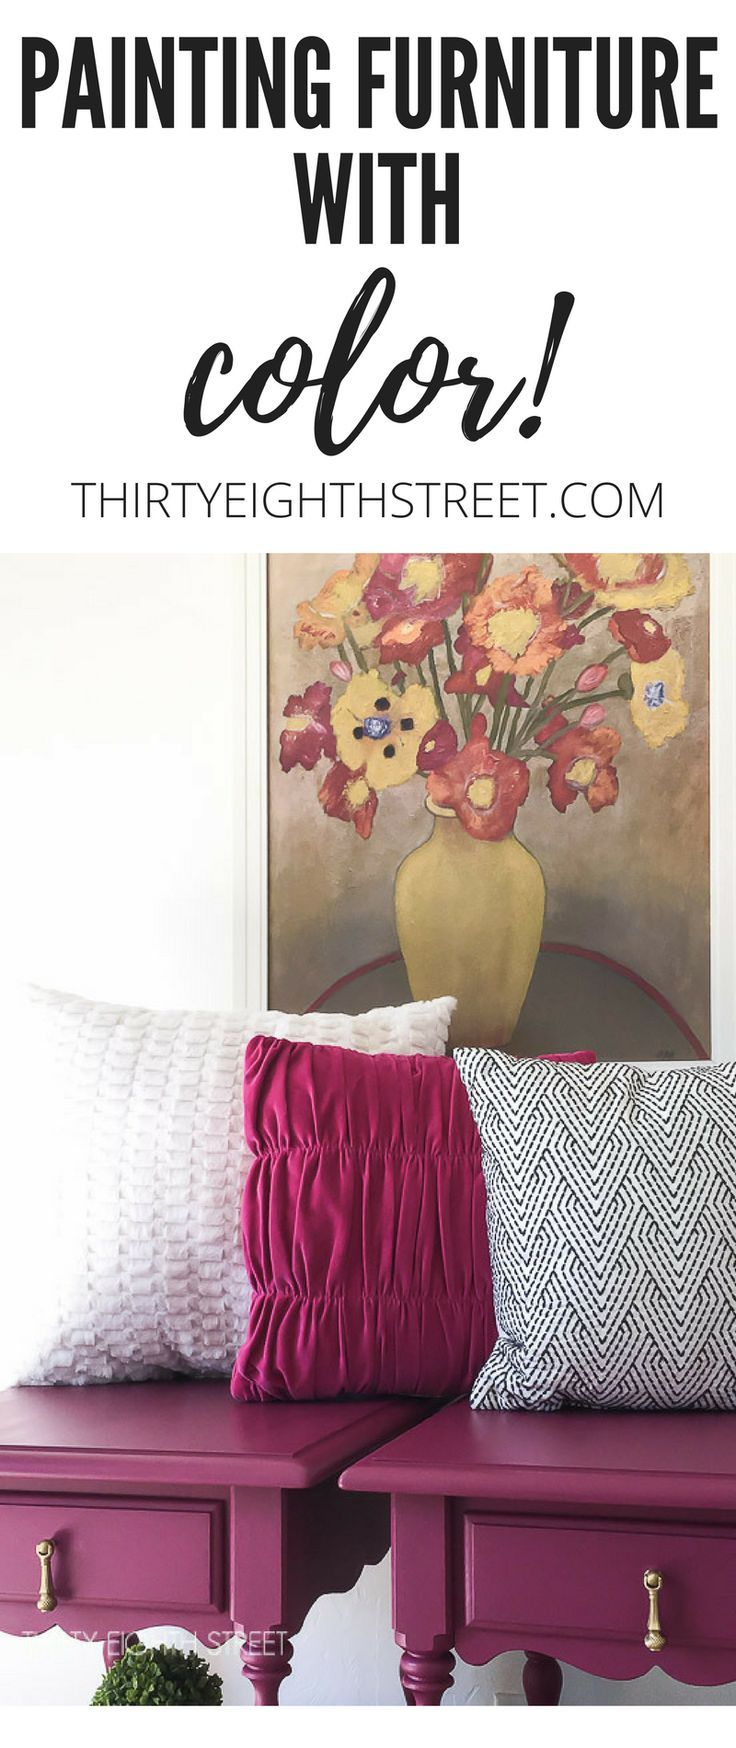 Give Your Furniture Color with Paint! Plum Painted Nightstands from Dixie Belle Paint. | Thirty Eighth Street